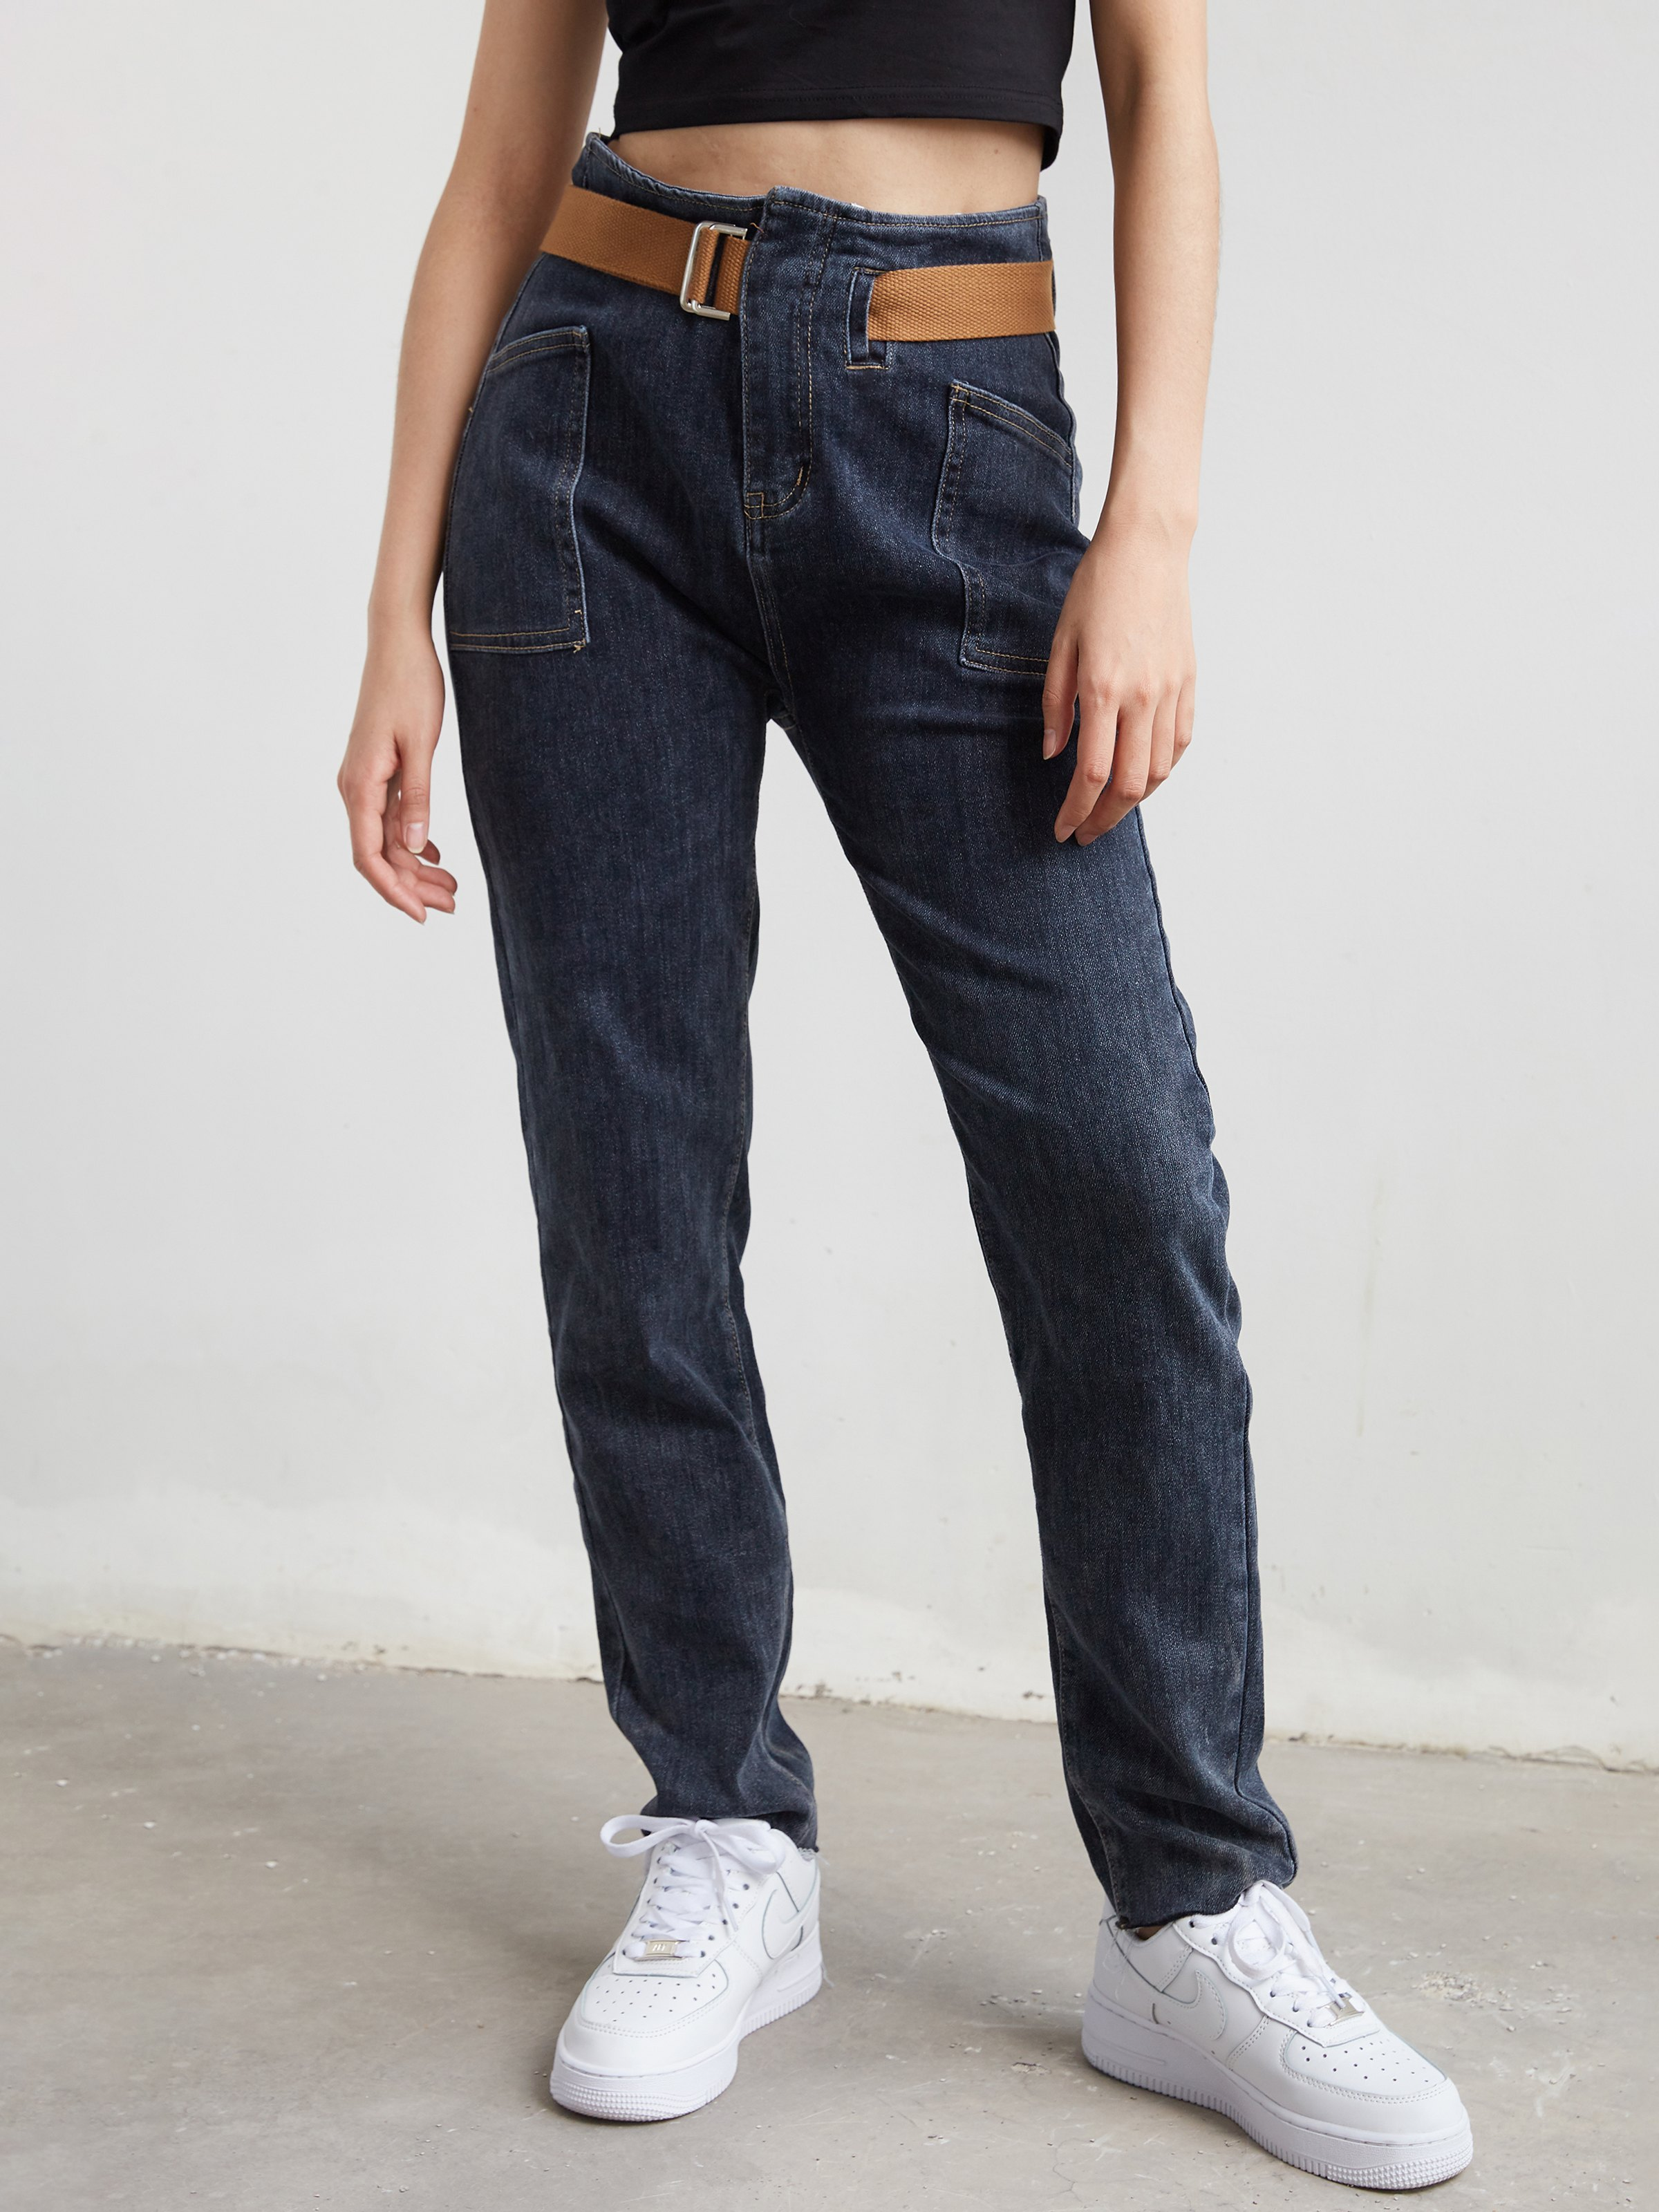 Belt Detail Cargo Jeans - Navy Blue S